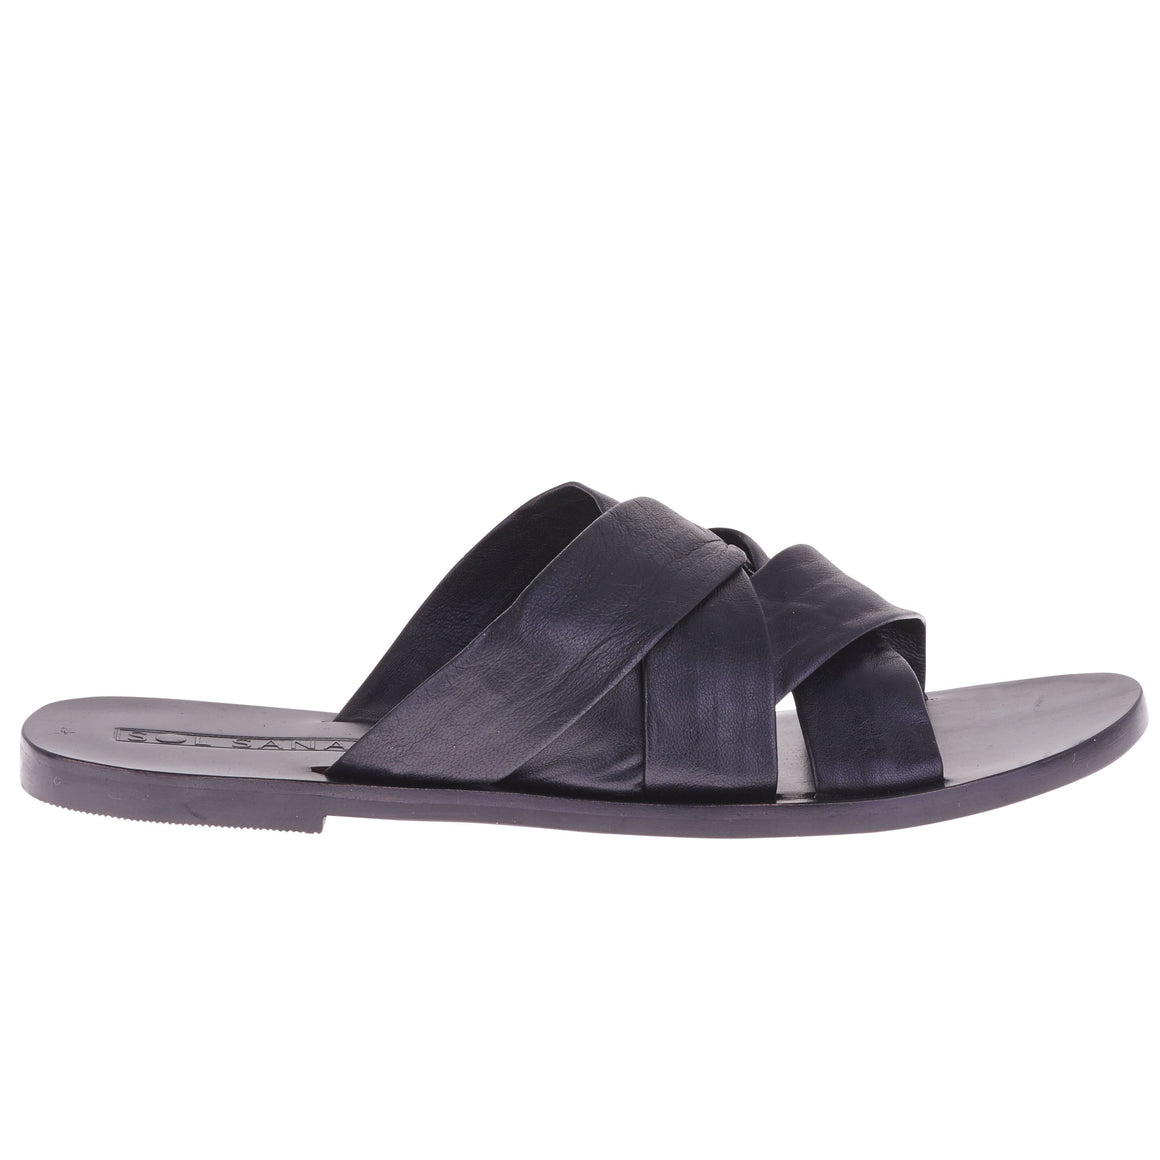 Nora Criss Cross Slides black Sandals | PIPE AND ROW BOUTIQUE